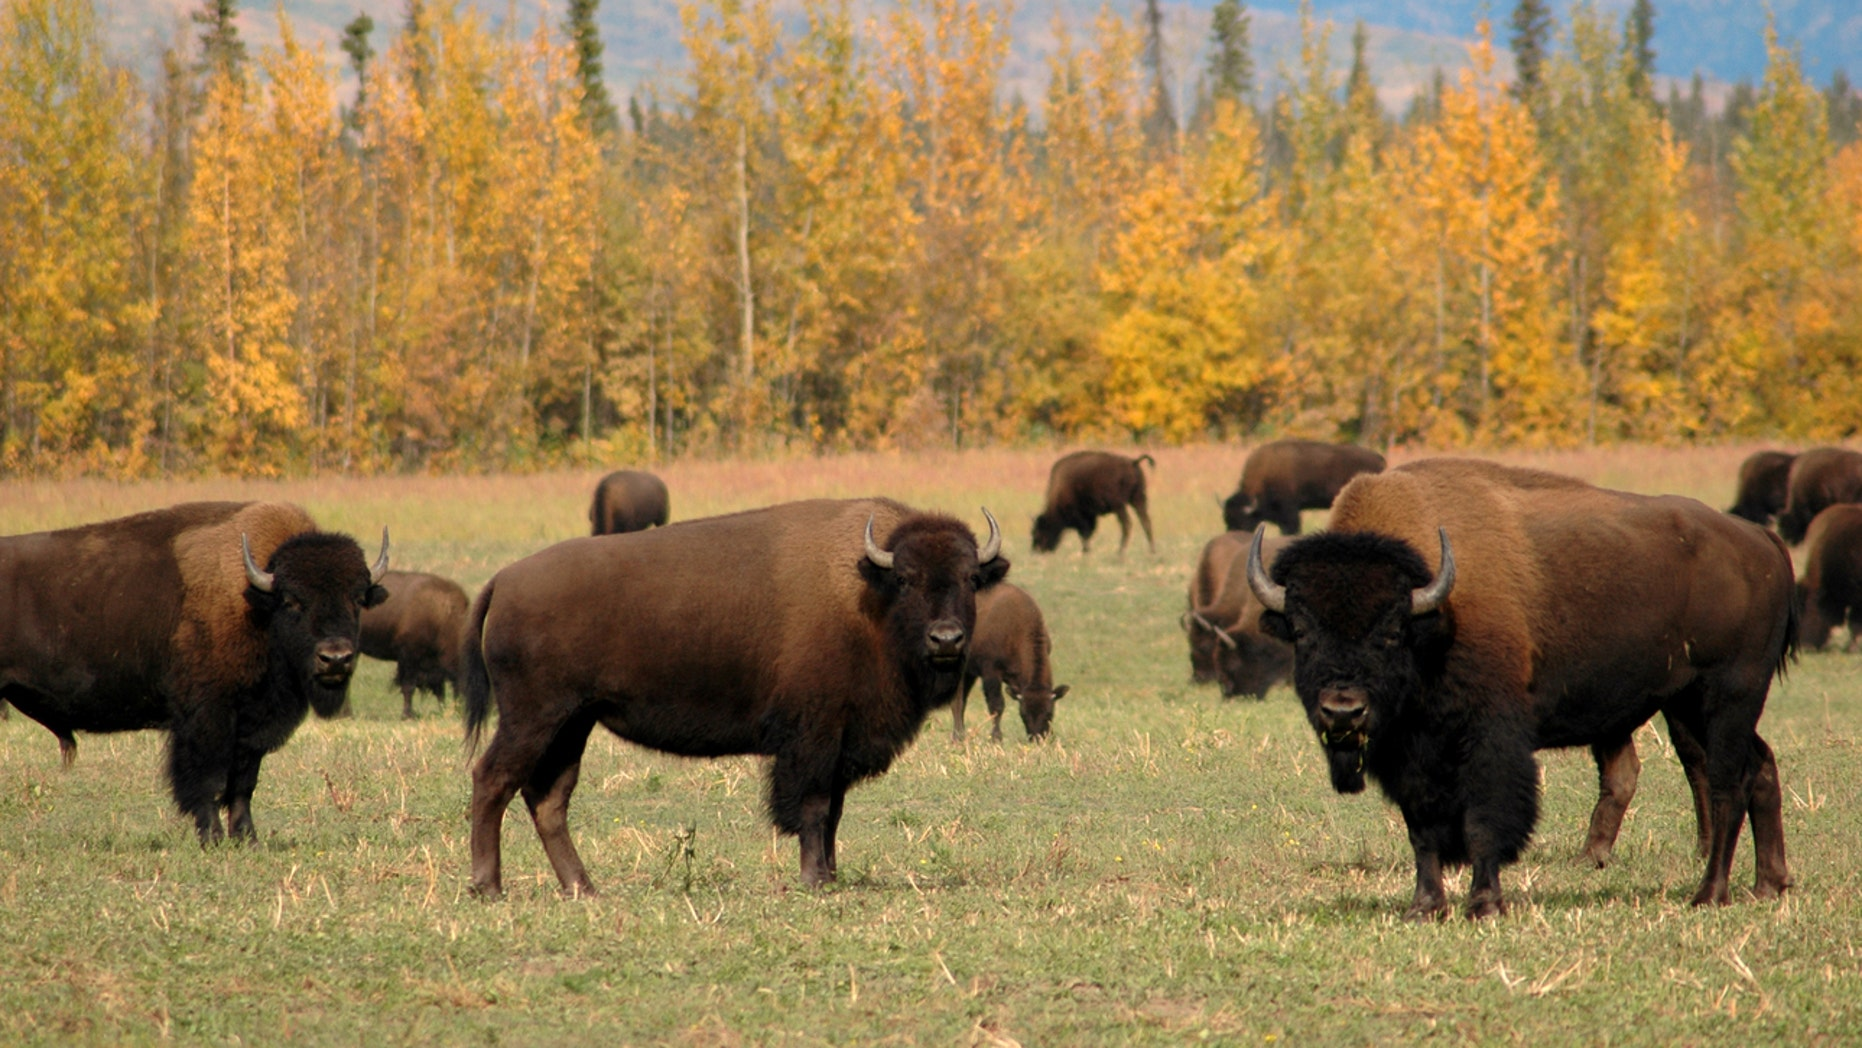 Wild bison may be making a comeback in the West.